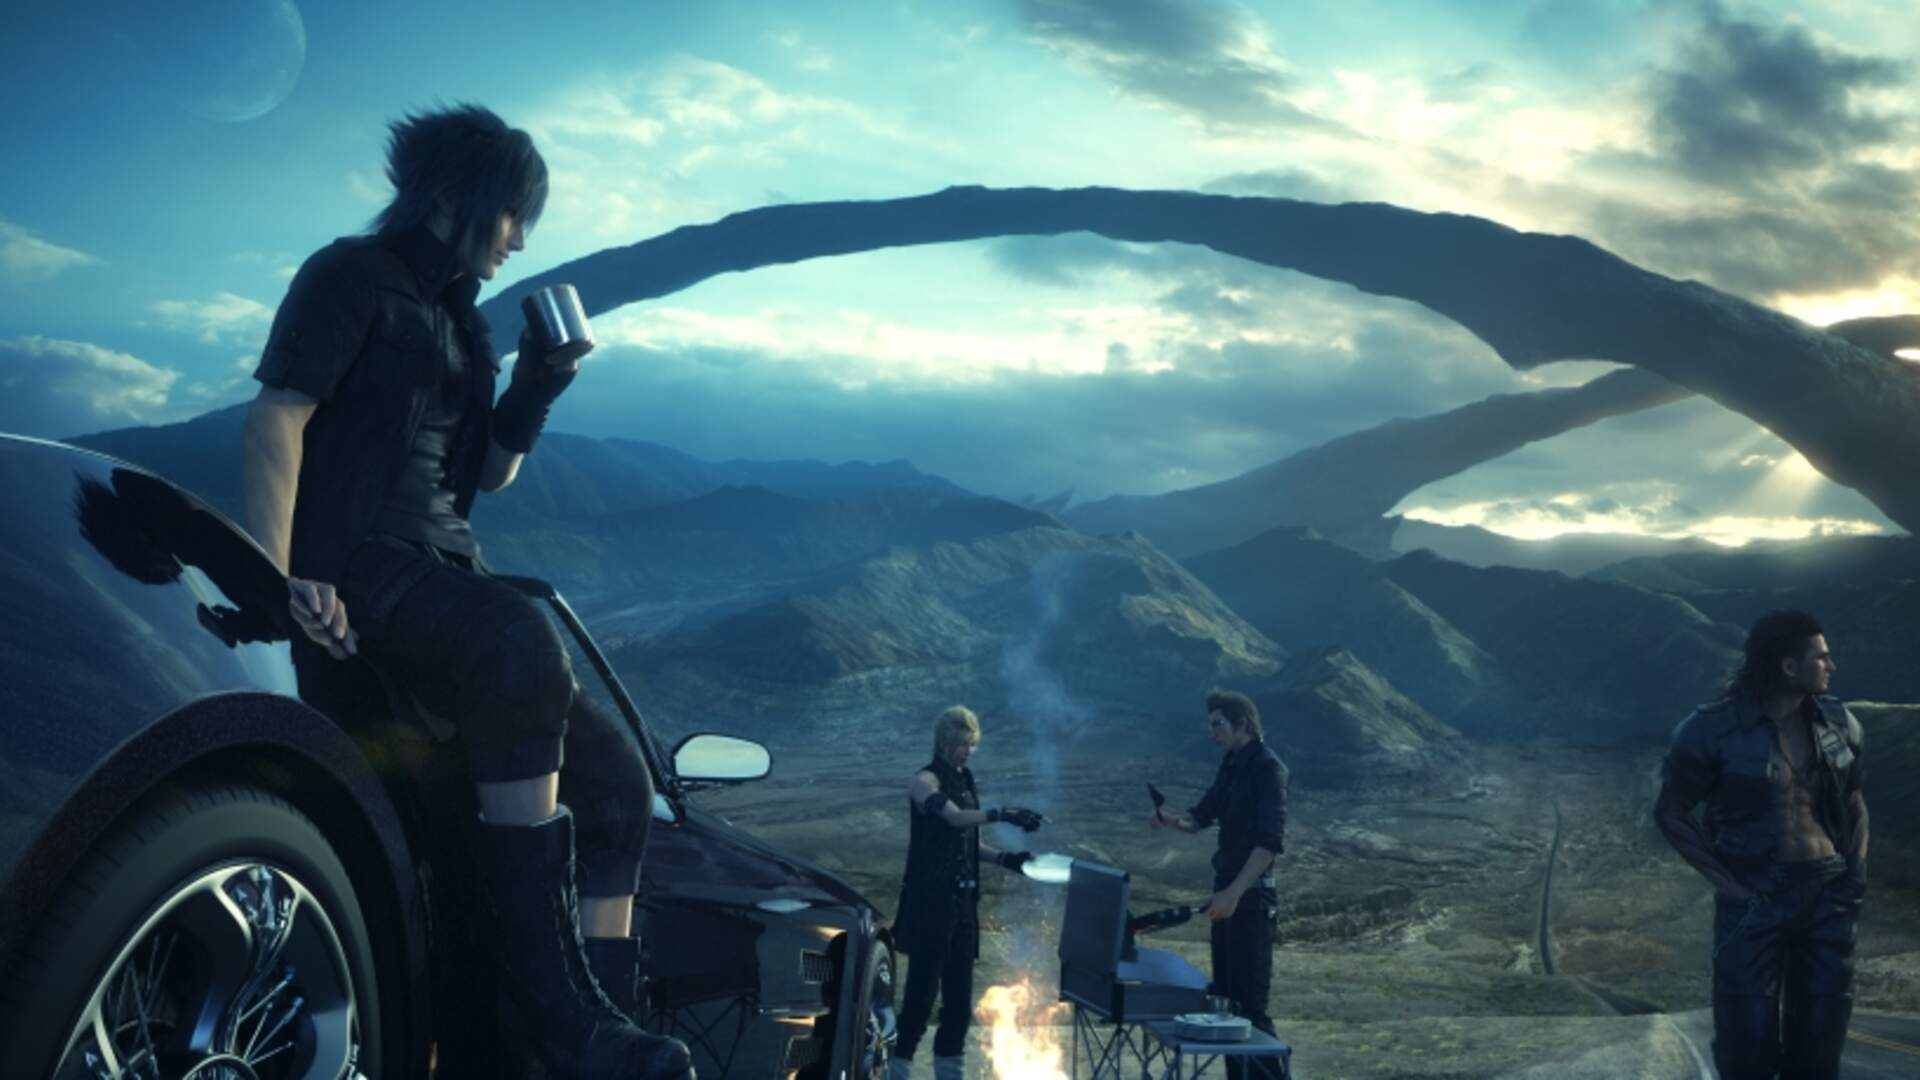 Final Fantasy 15: Where to Buy All the Soundtrack CDs